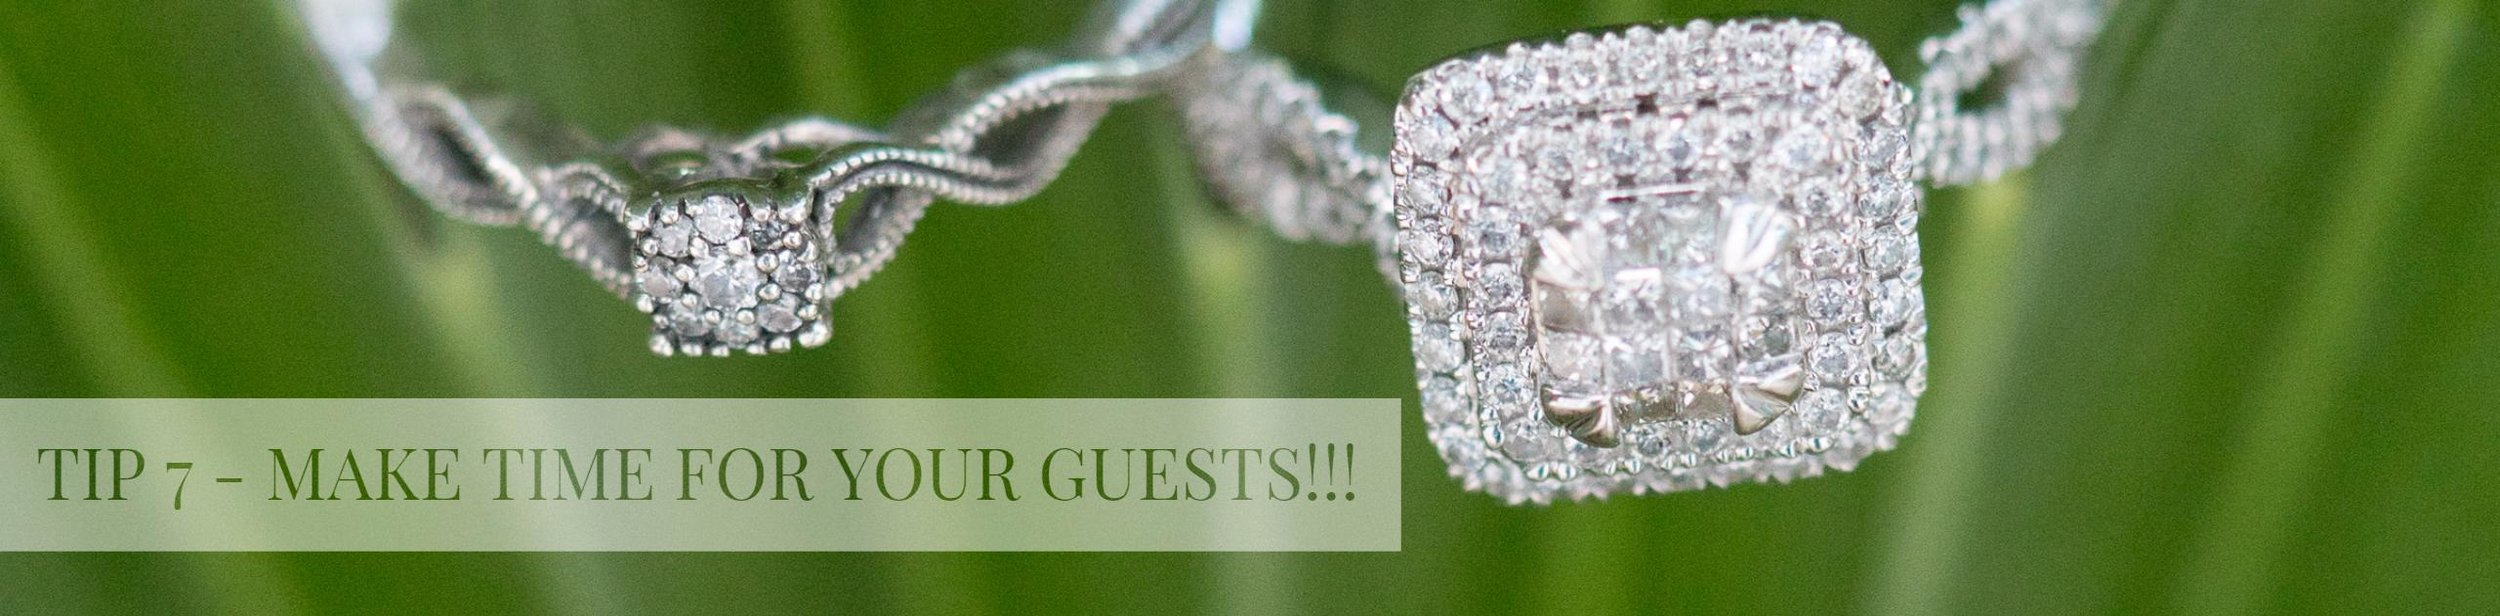 TIP 7 - MAKE TIME FOR YOUR GUESTS!!!